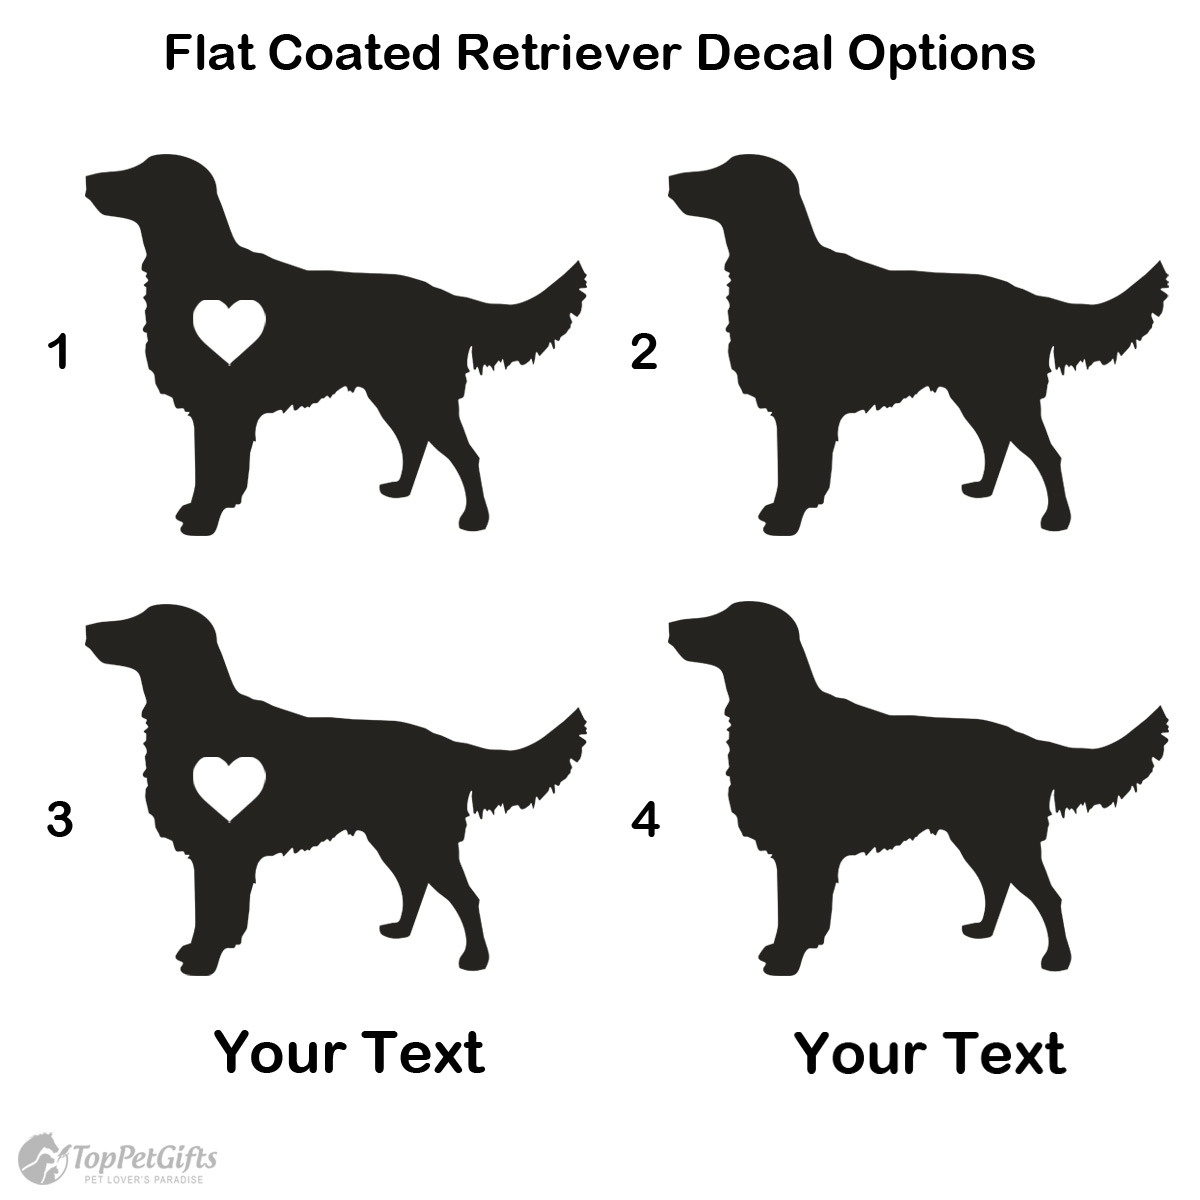 Personalized Flat Coated Retriever Decal